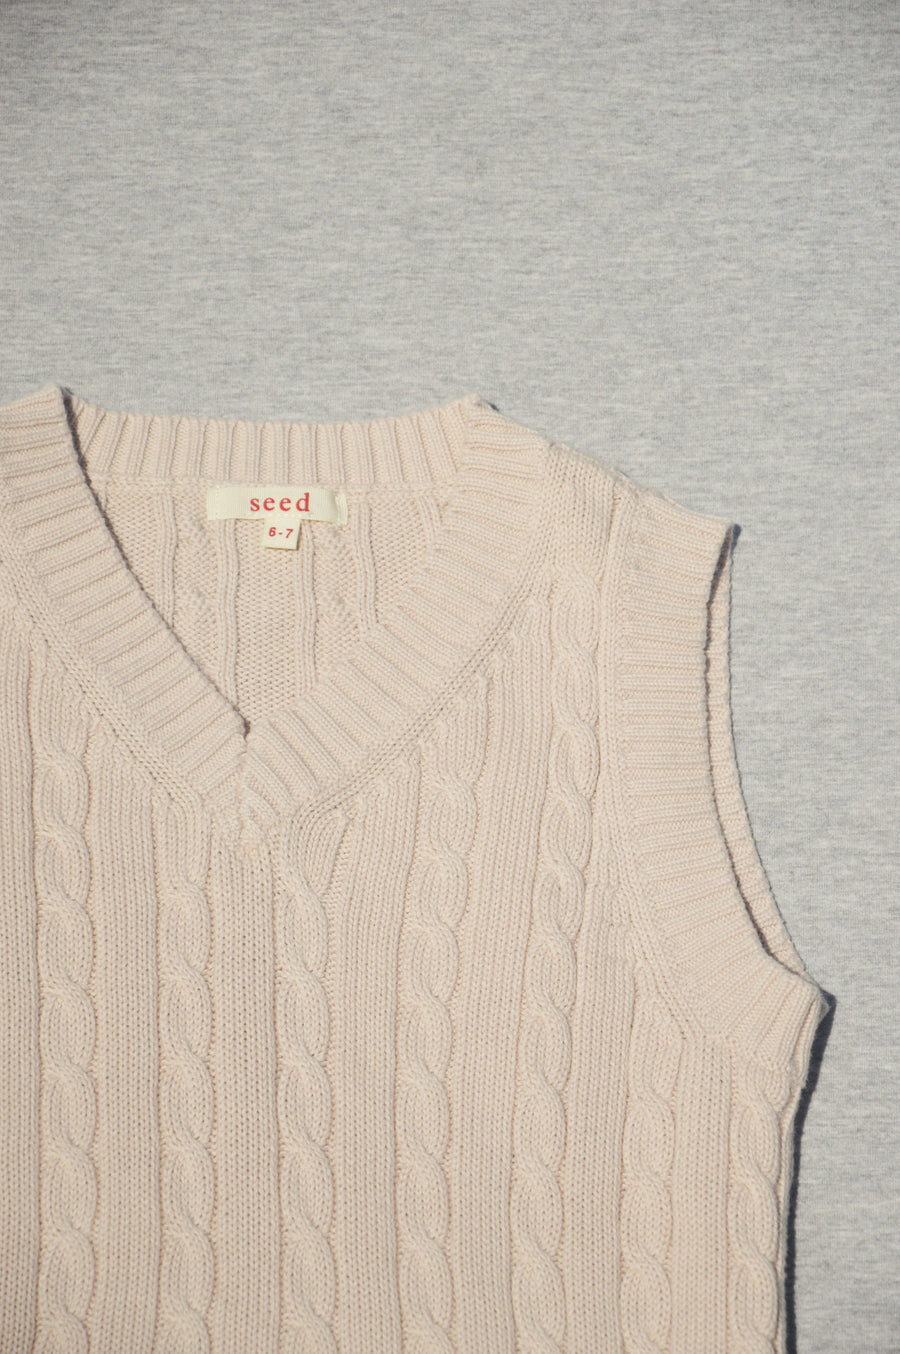 Seed - nearly new -  taupe cable knit vest, size 6-7